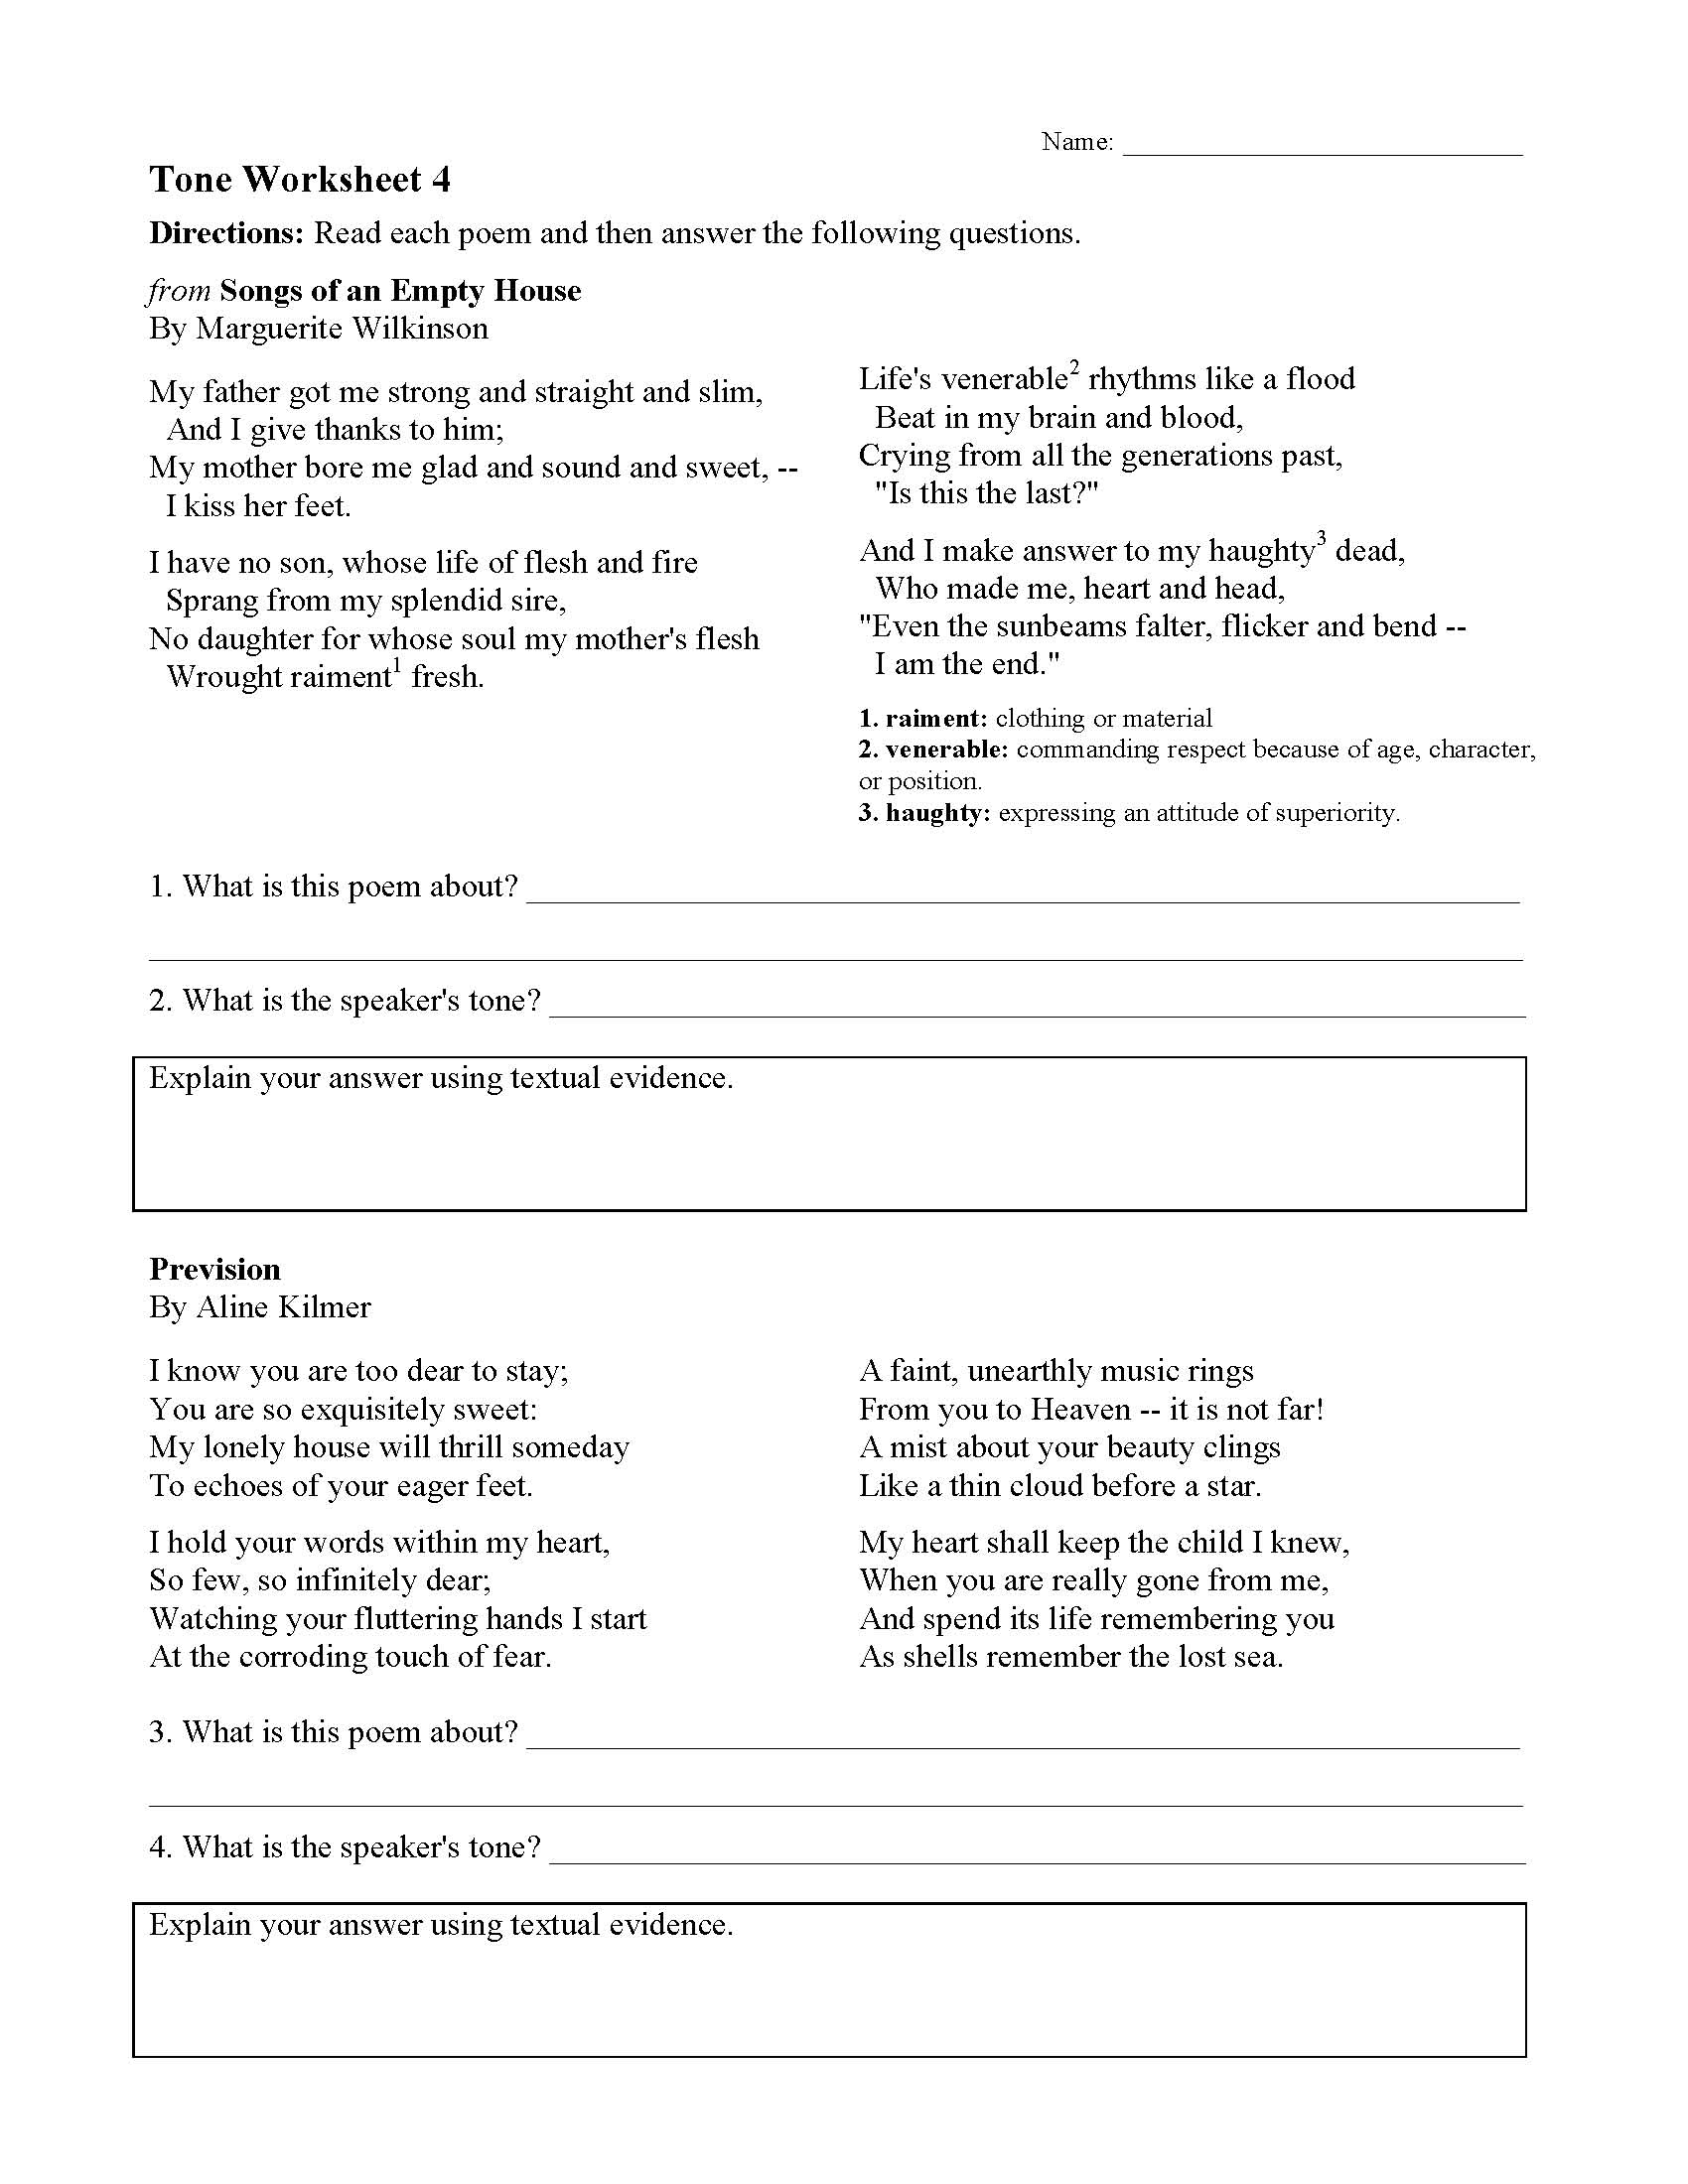 This is a preview image of Tone Worksheet 4. Click on it to enlarge it or view the source file.